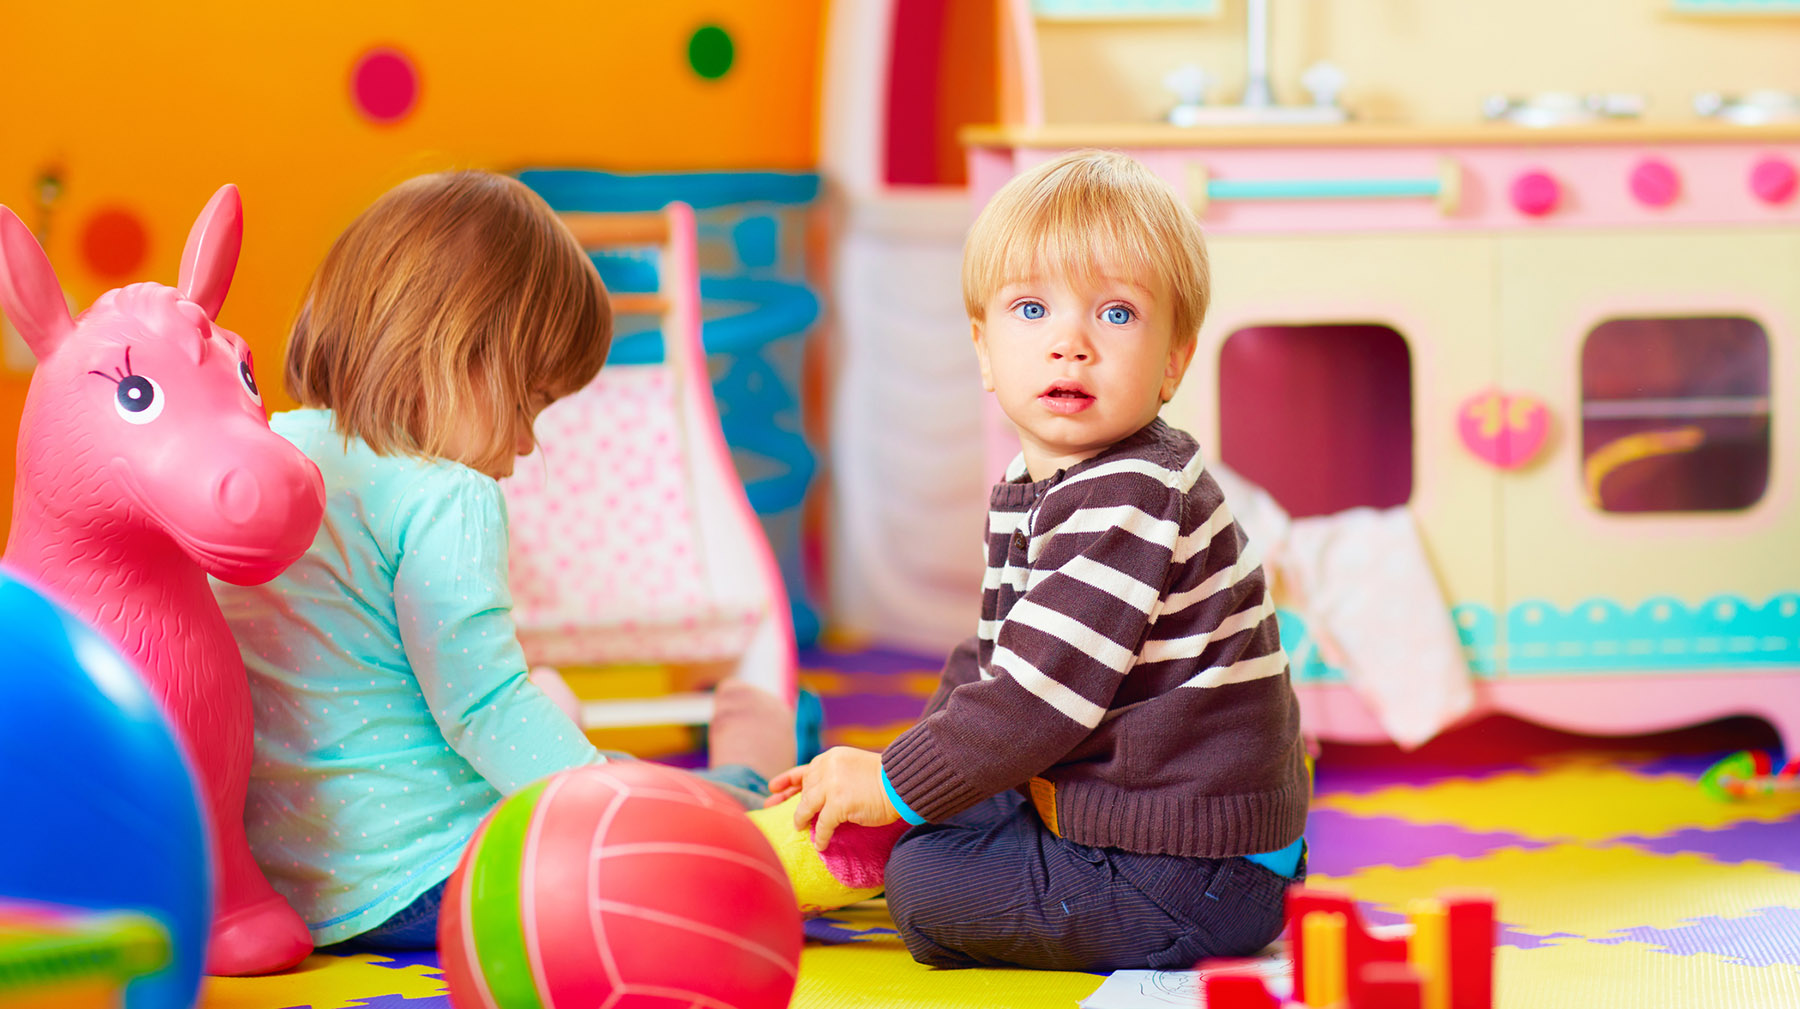 Rocking Horse Creche and Preschool | cute little kids playing together in daycare center | Youghal, Cork